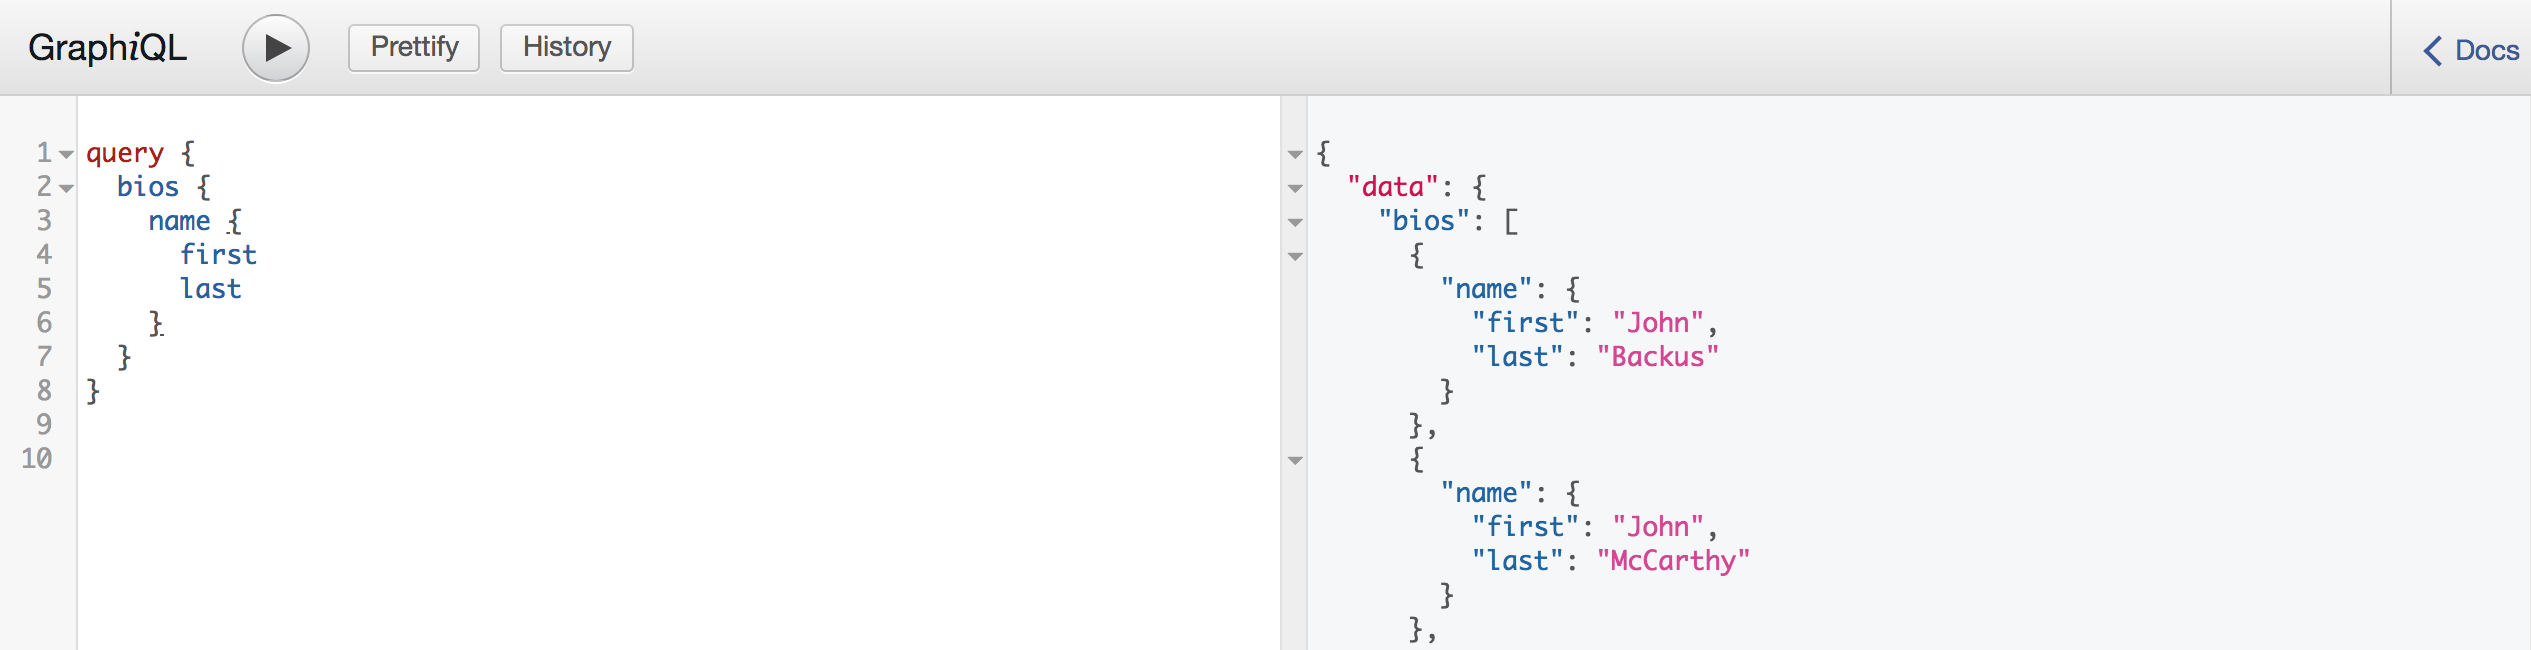 The GraphiQL playground in action